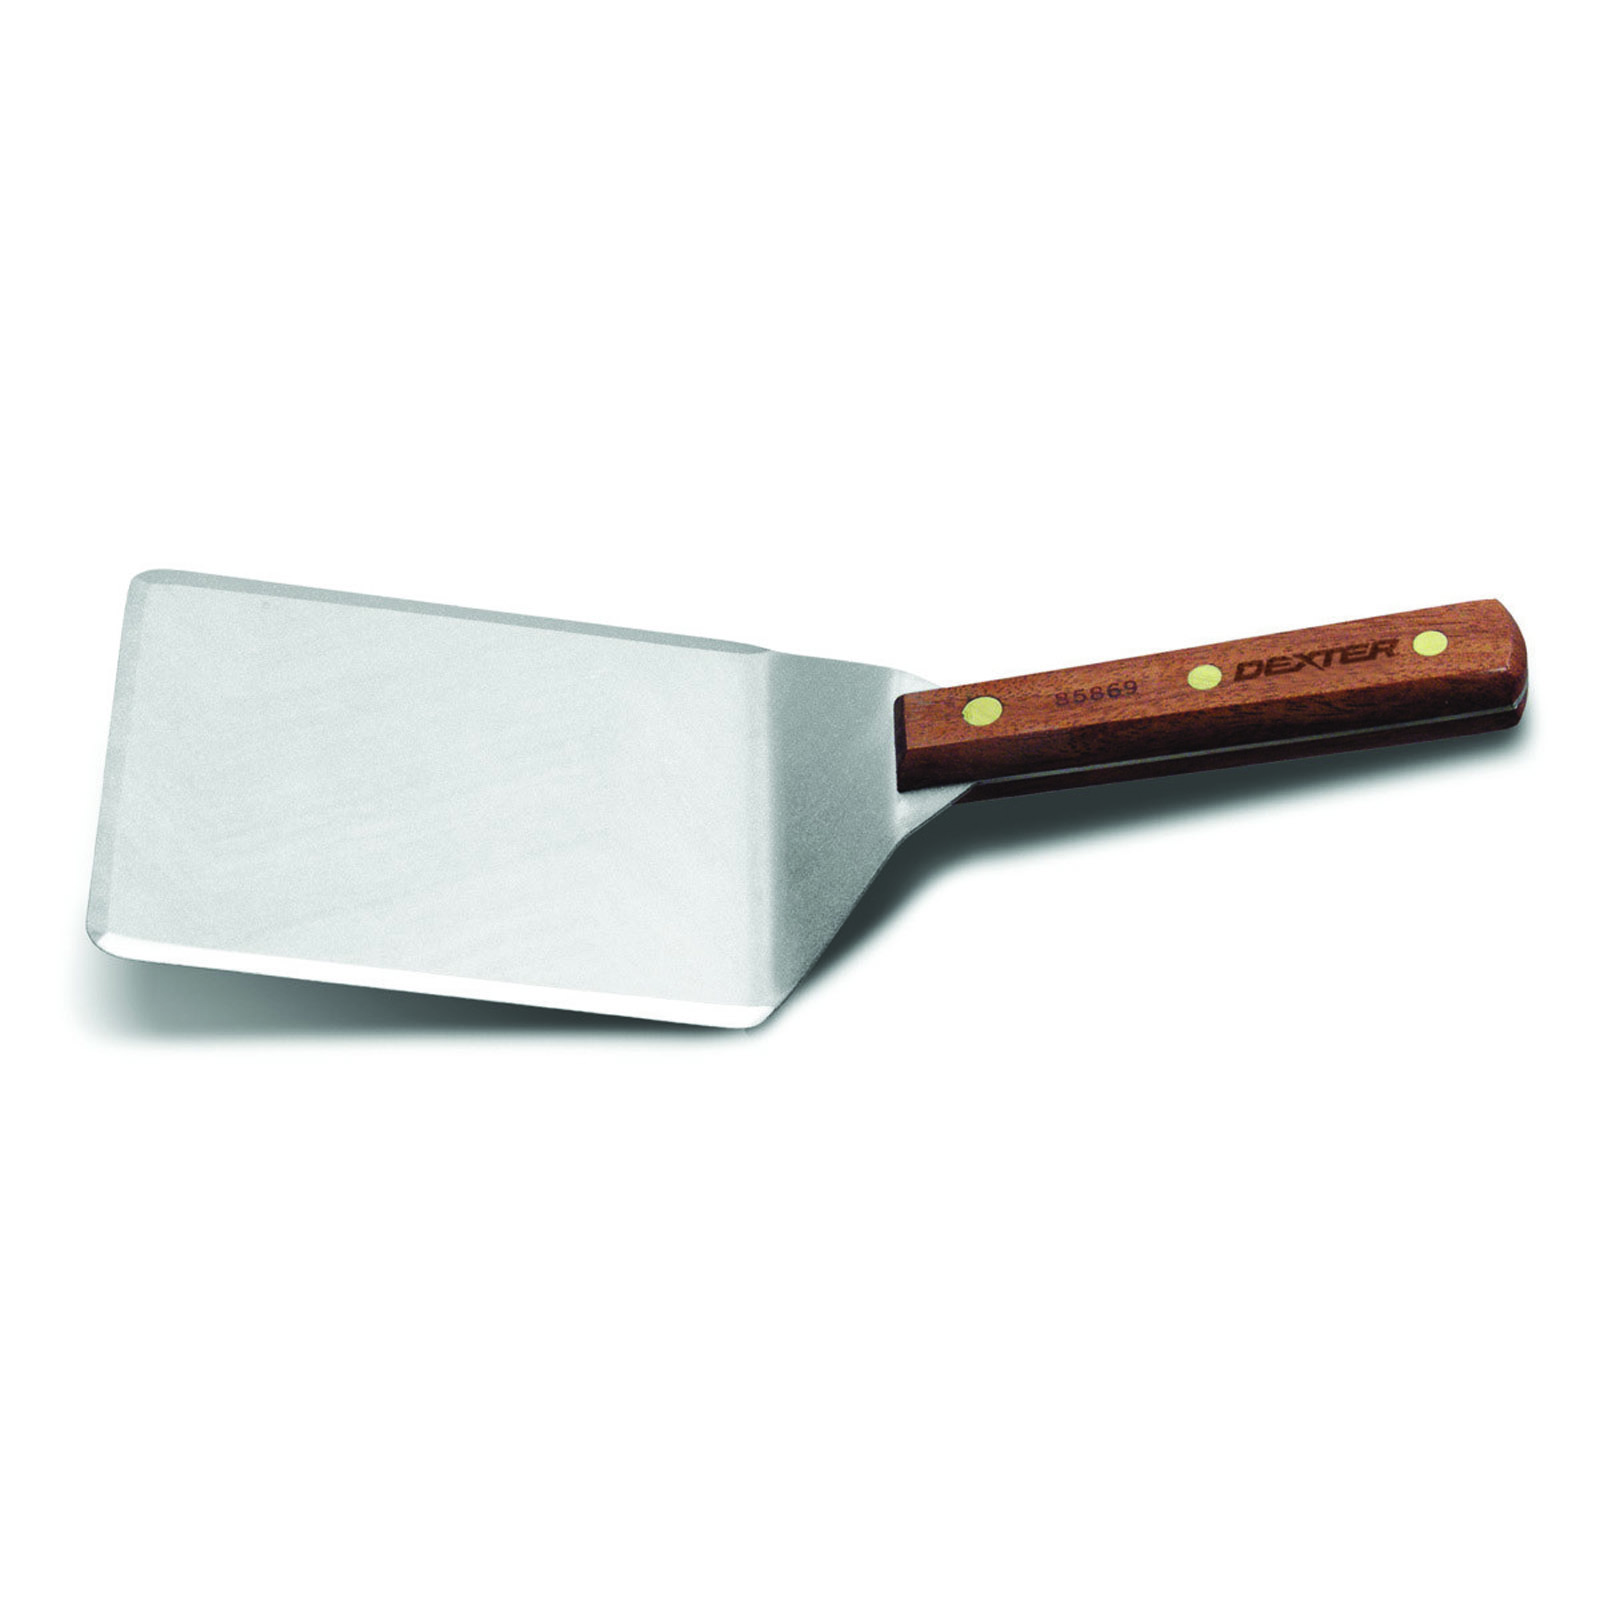 Dexter Russell 85869PCP turner, solid, stainless steel